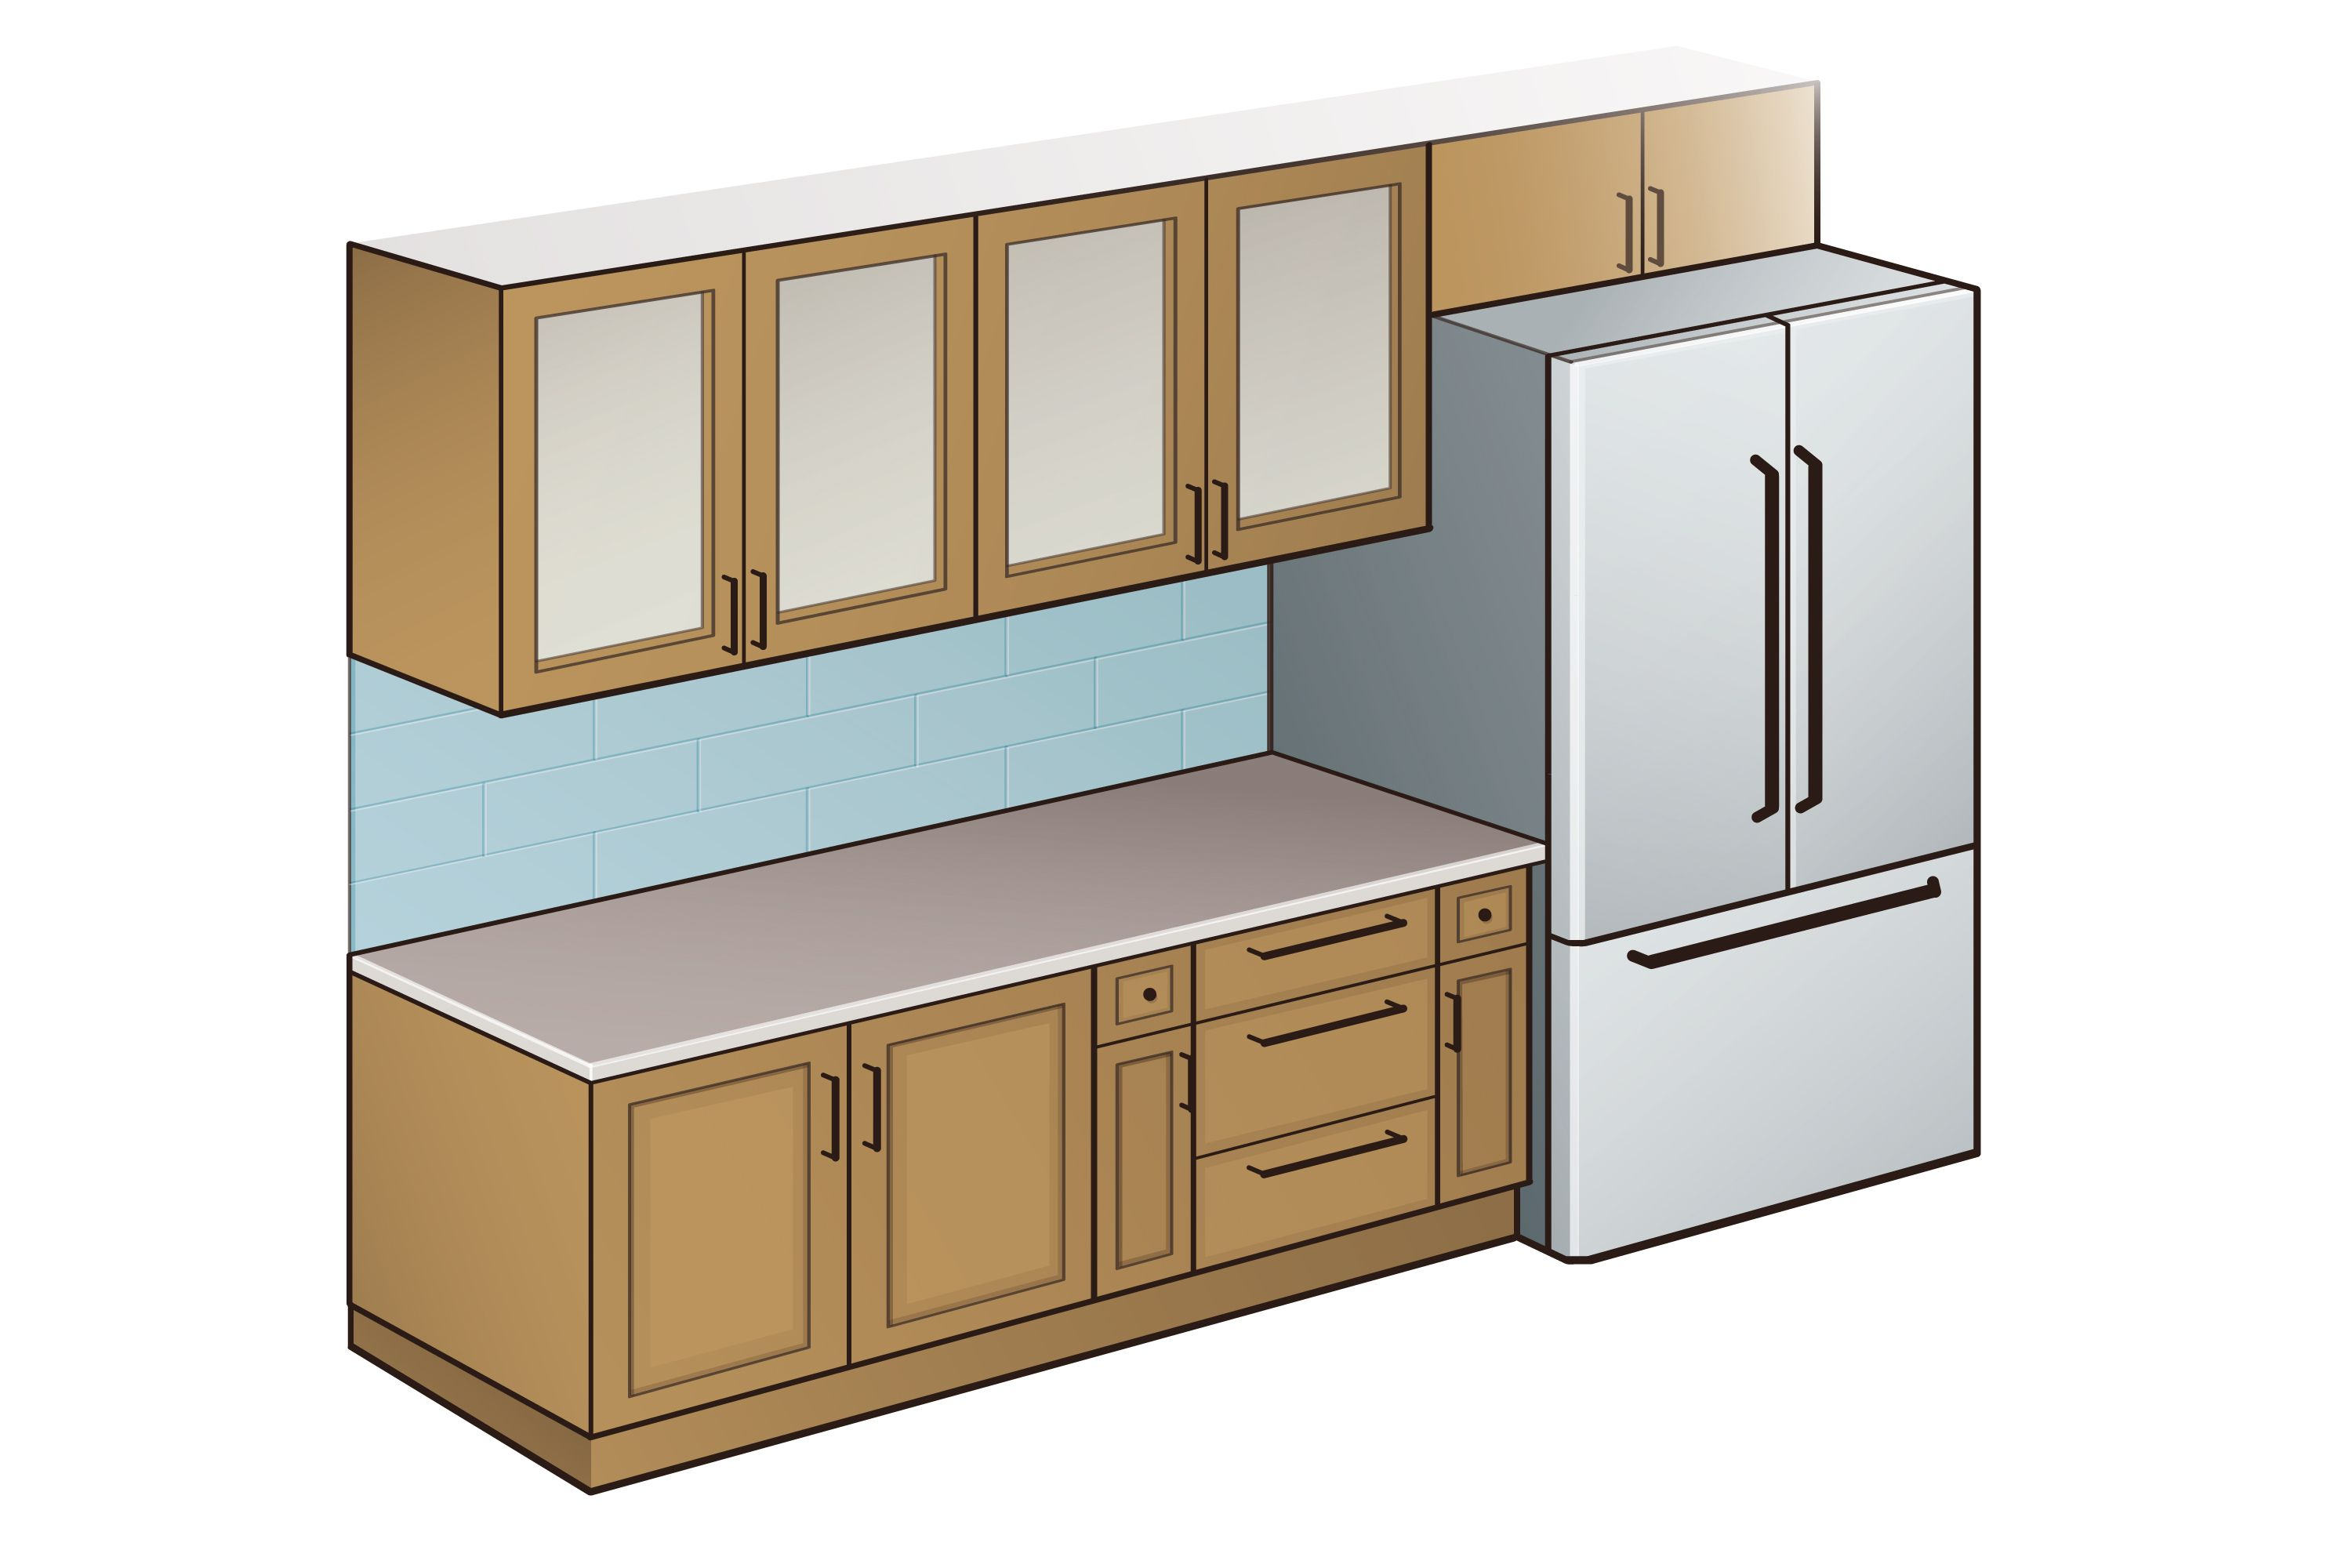 Standard Kitchen Counter Depth Hunker Kitchen Cabinet Dimensions Kitchen Cabinets Height Kitchen Cabinet Sizes